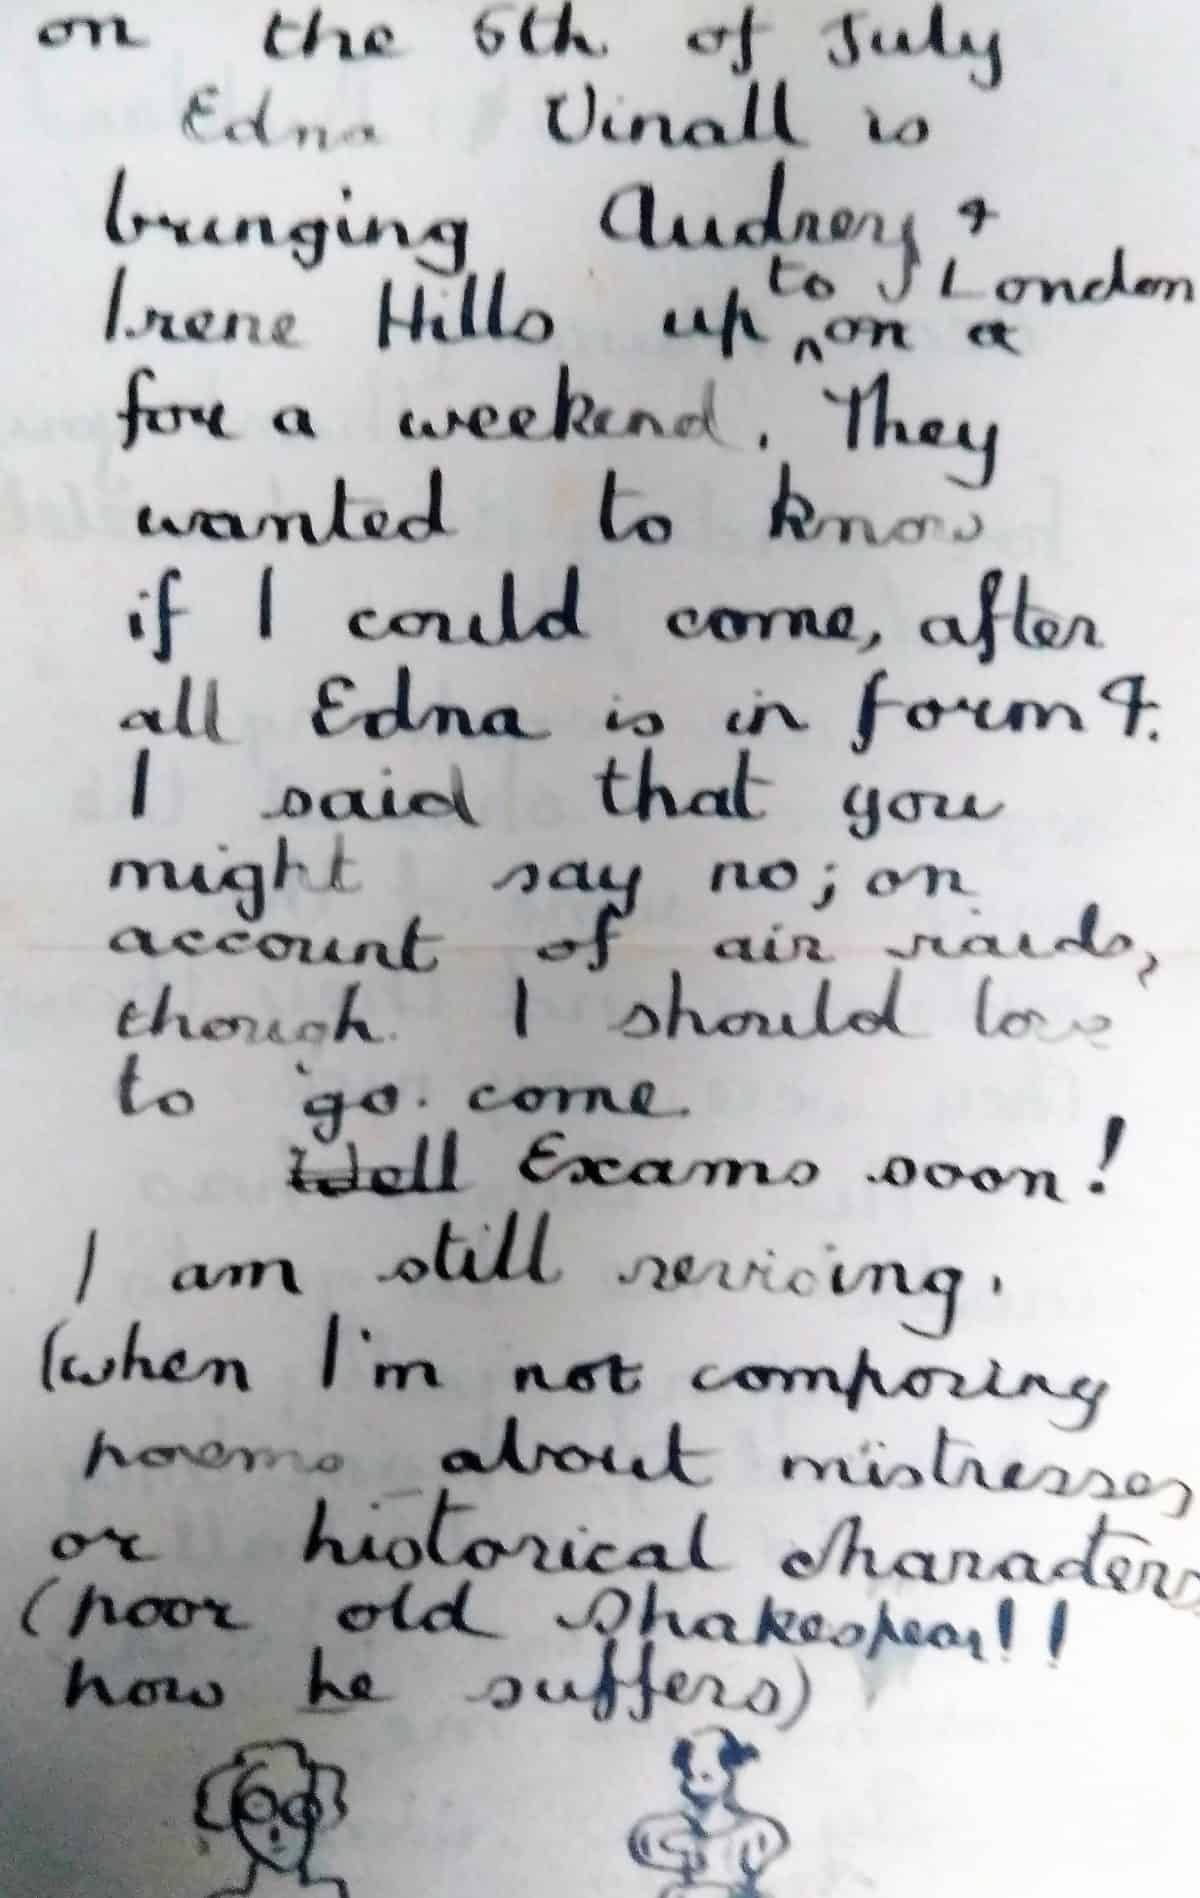 WW2 9 Evacuee letter Page 2 (cropped)